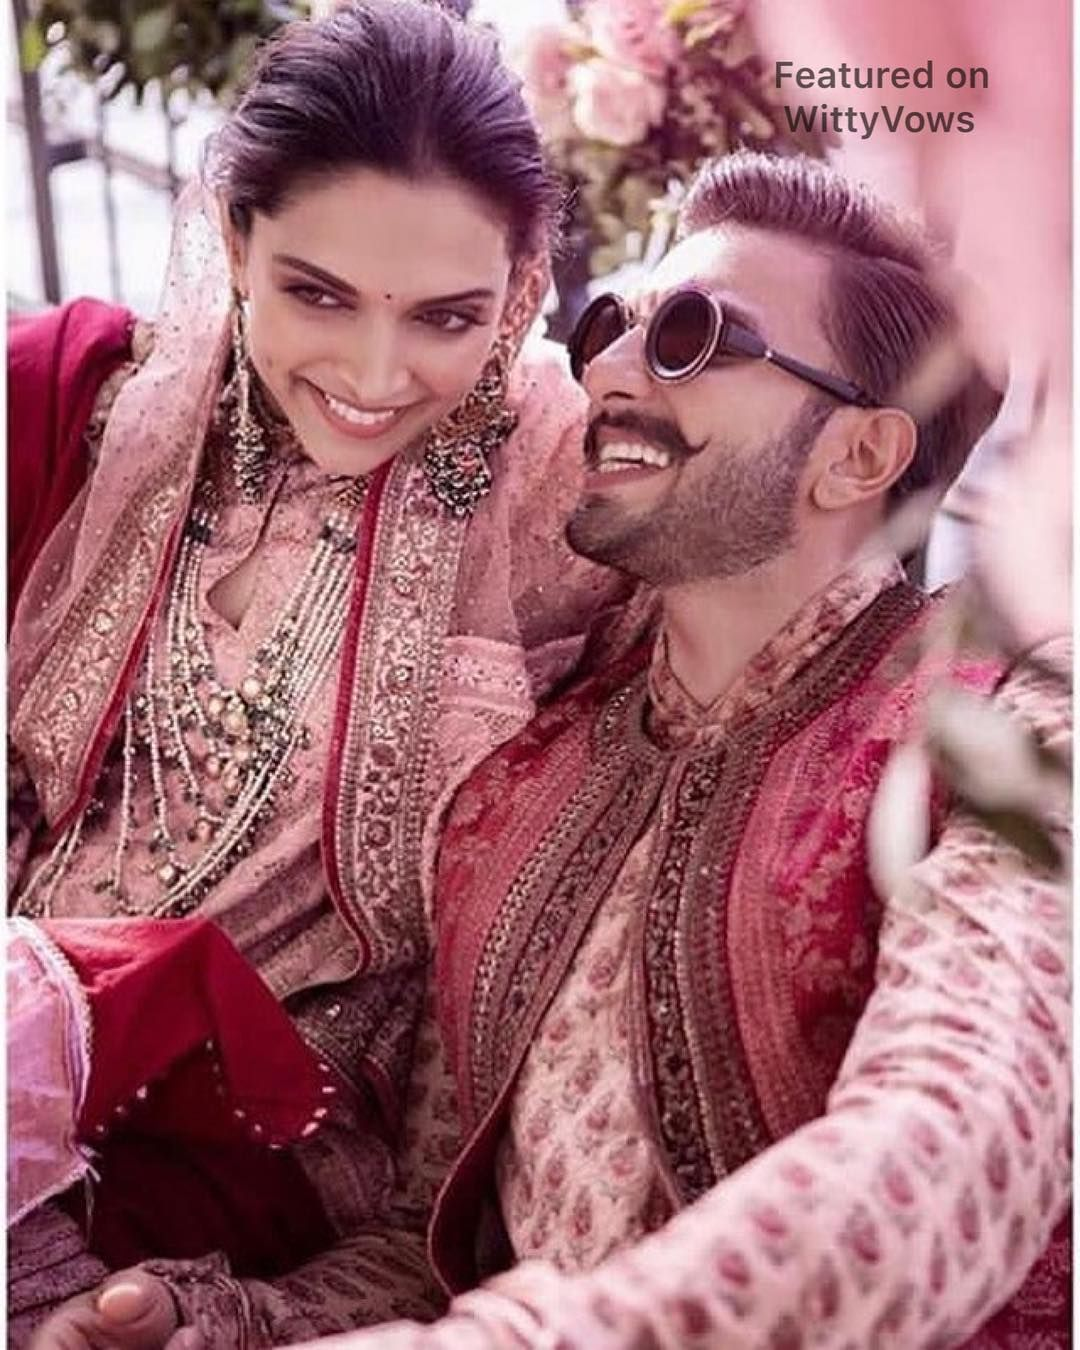 Deepika Padukone And Ranveer Singh Wedding Deepveer Wedding Destination Weddings In Italy Weddings At Lake C Bollywood Wedding Desi Bride Deepika Ranveer